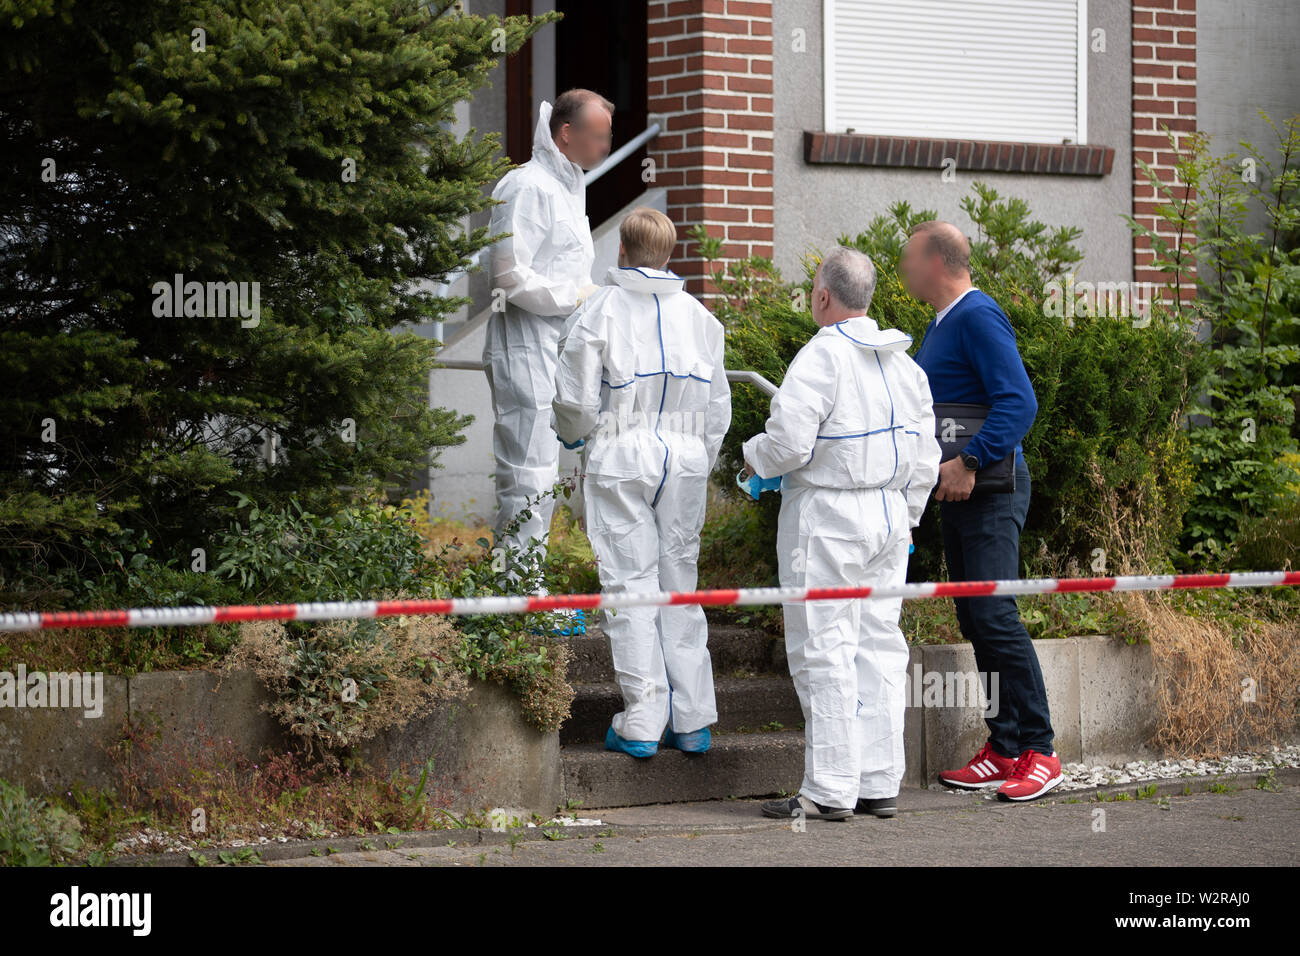 Werther, Germany. 10th July, 2019. Forensics officers are standing outside a house. Three dead were found in a detached house in Werther near Bielefeld. They were adults, a spokeswoman for the Gütersloh district police said on Wednesday. 'It doesn't look like an accident,' she continued. Credit: Friso Gentsch/dpa - ATTENTION: persons were pixelated for legal reasons/dpa/Alamy Live News - Stock Image